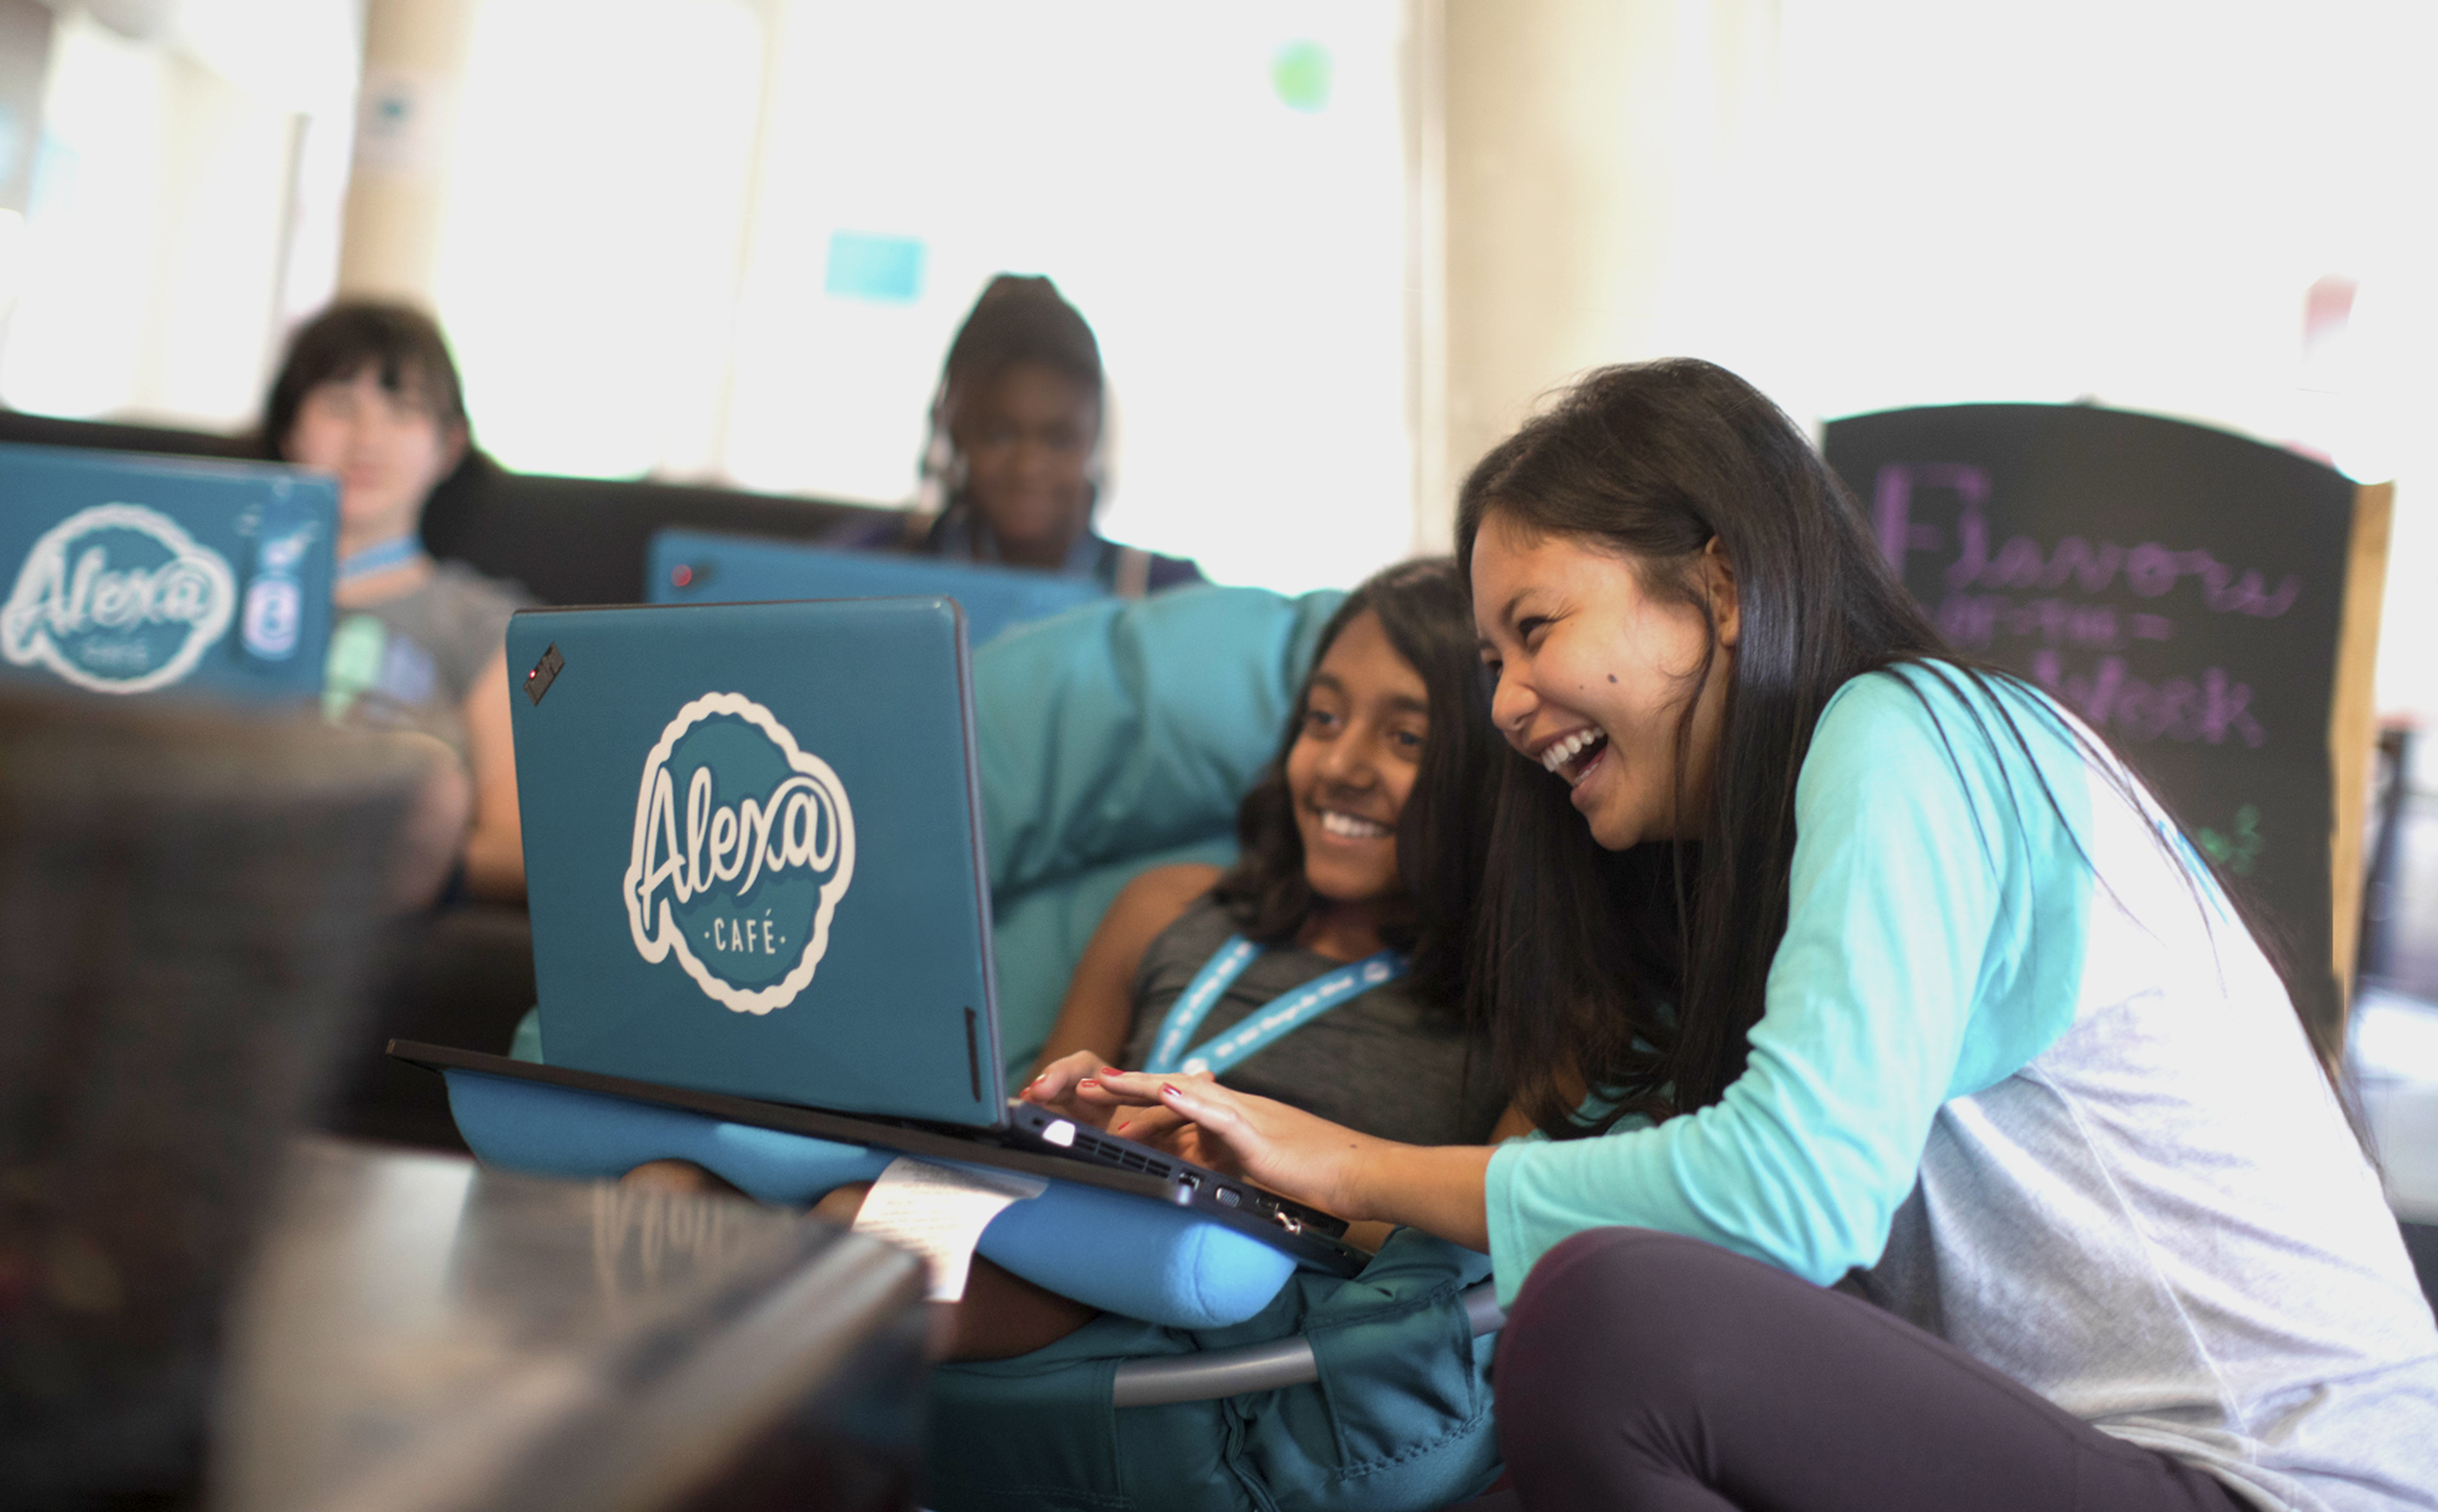 Summer Program - Cybersecurity | Alexa Cafe: All-Girls STEM Camp | Held at Vanderbilt